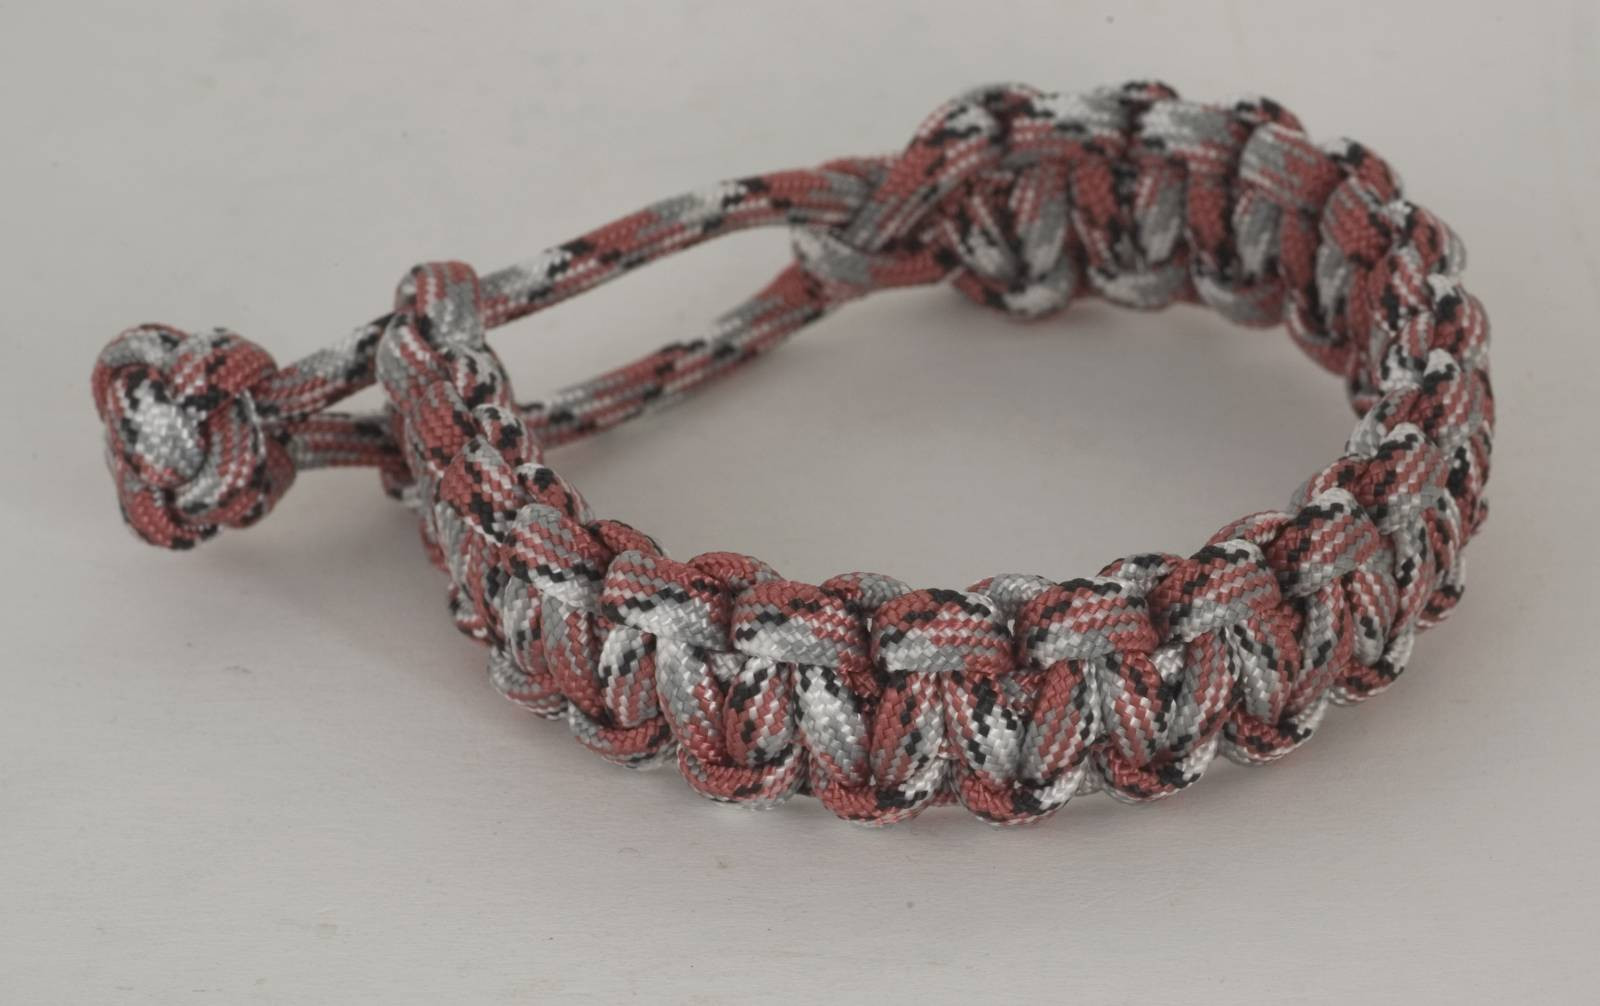 Tom Hardy Bracelet  Mad Max Adjustable Paracord Survival Bracelet Tom Hardy